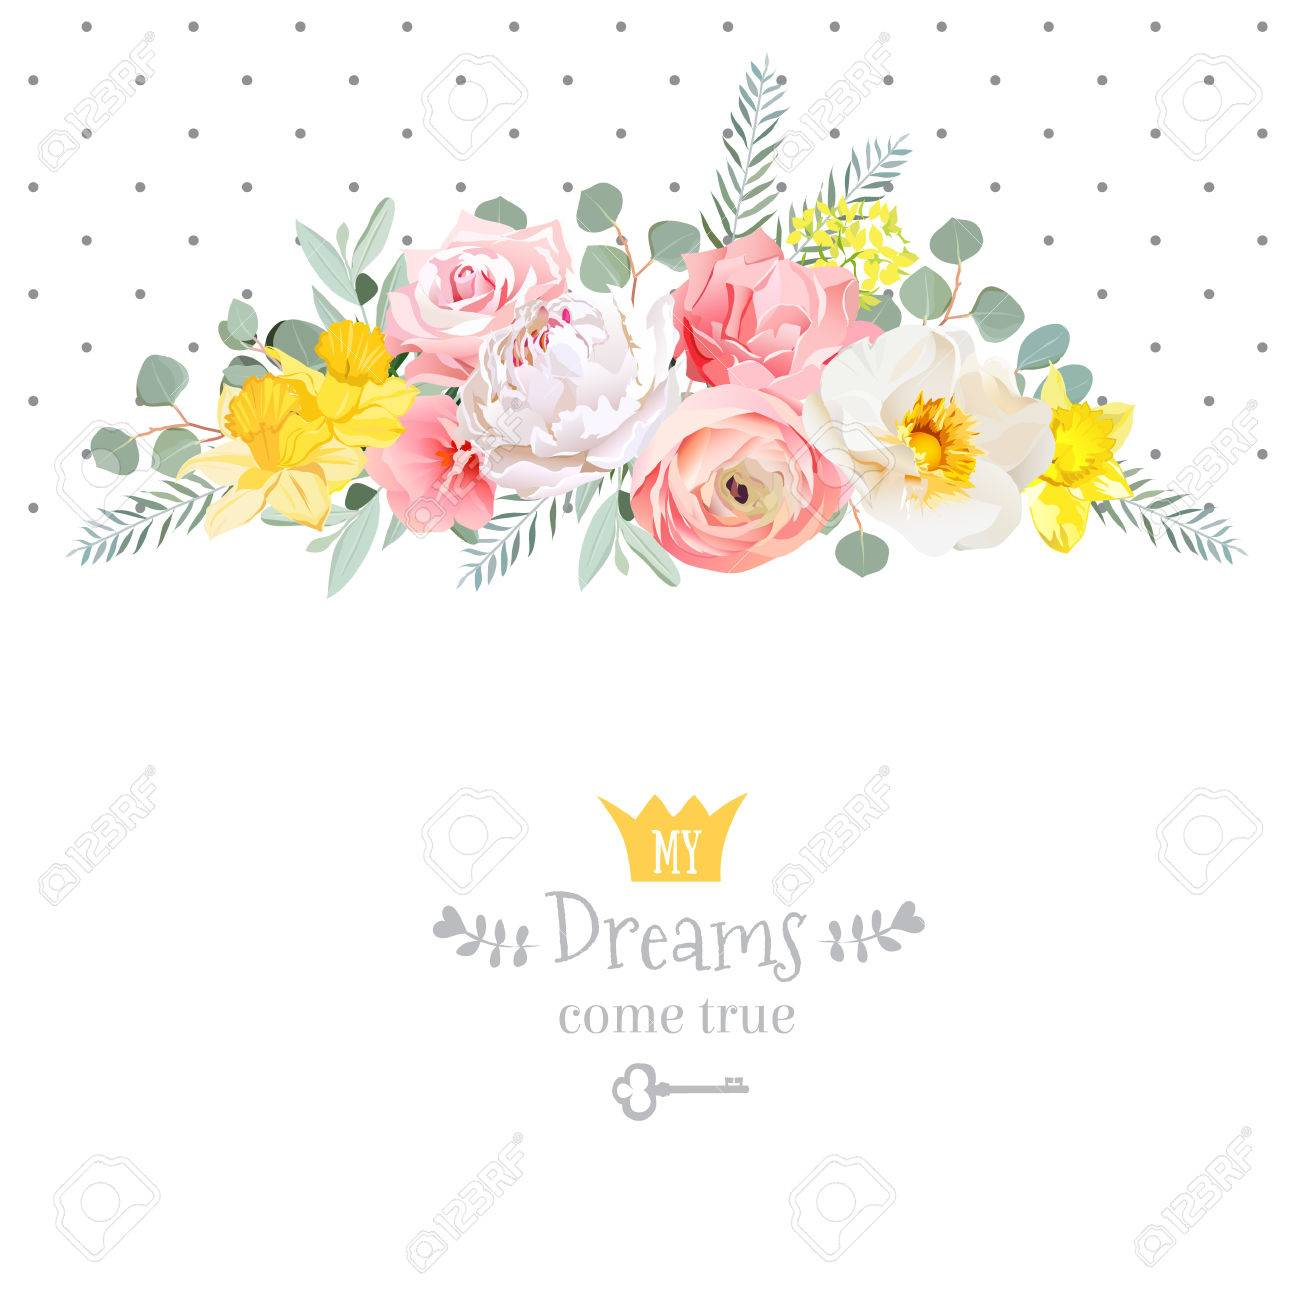 Rose, narcissus, pink flowers, ranunculus and decorative eucaliptus leaves design card. Polka dots backdrop. All elements are isolated and editable. - 67822971